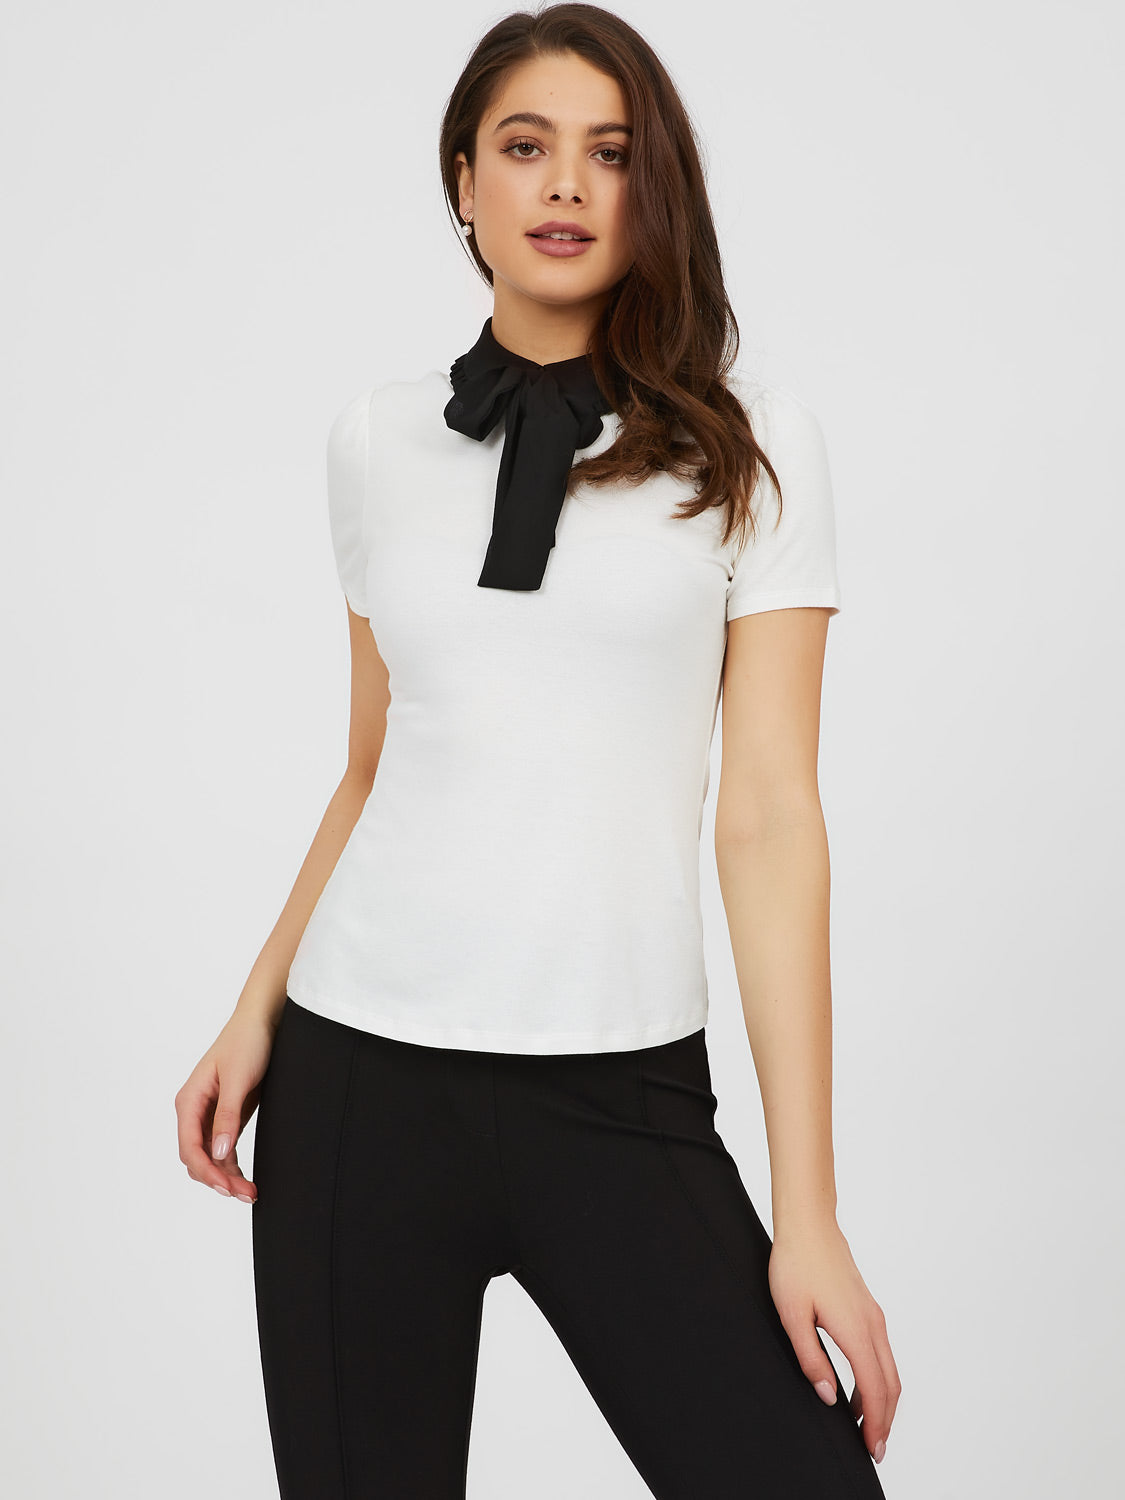 Tie Neck Chiffon Collar Top